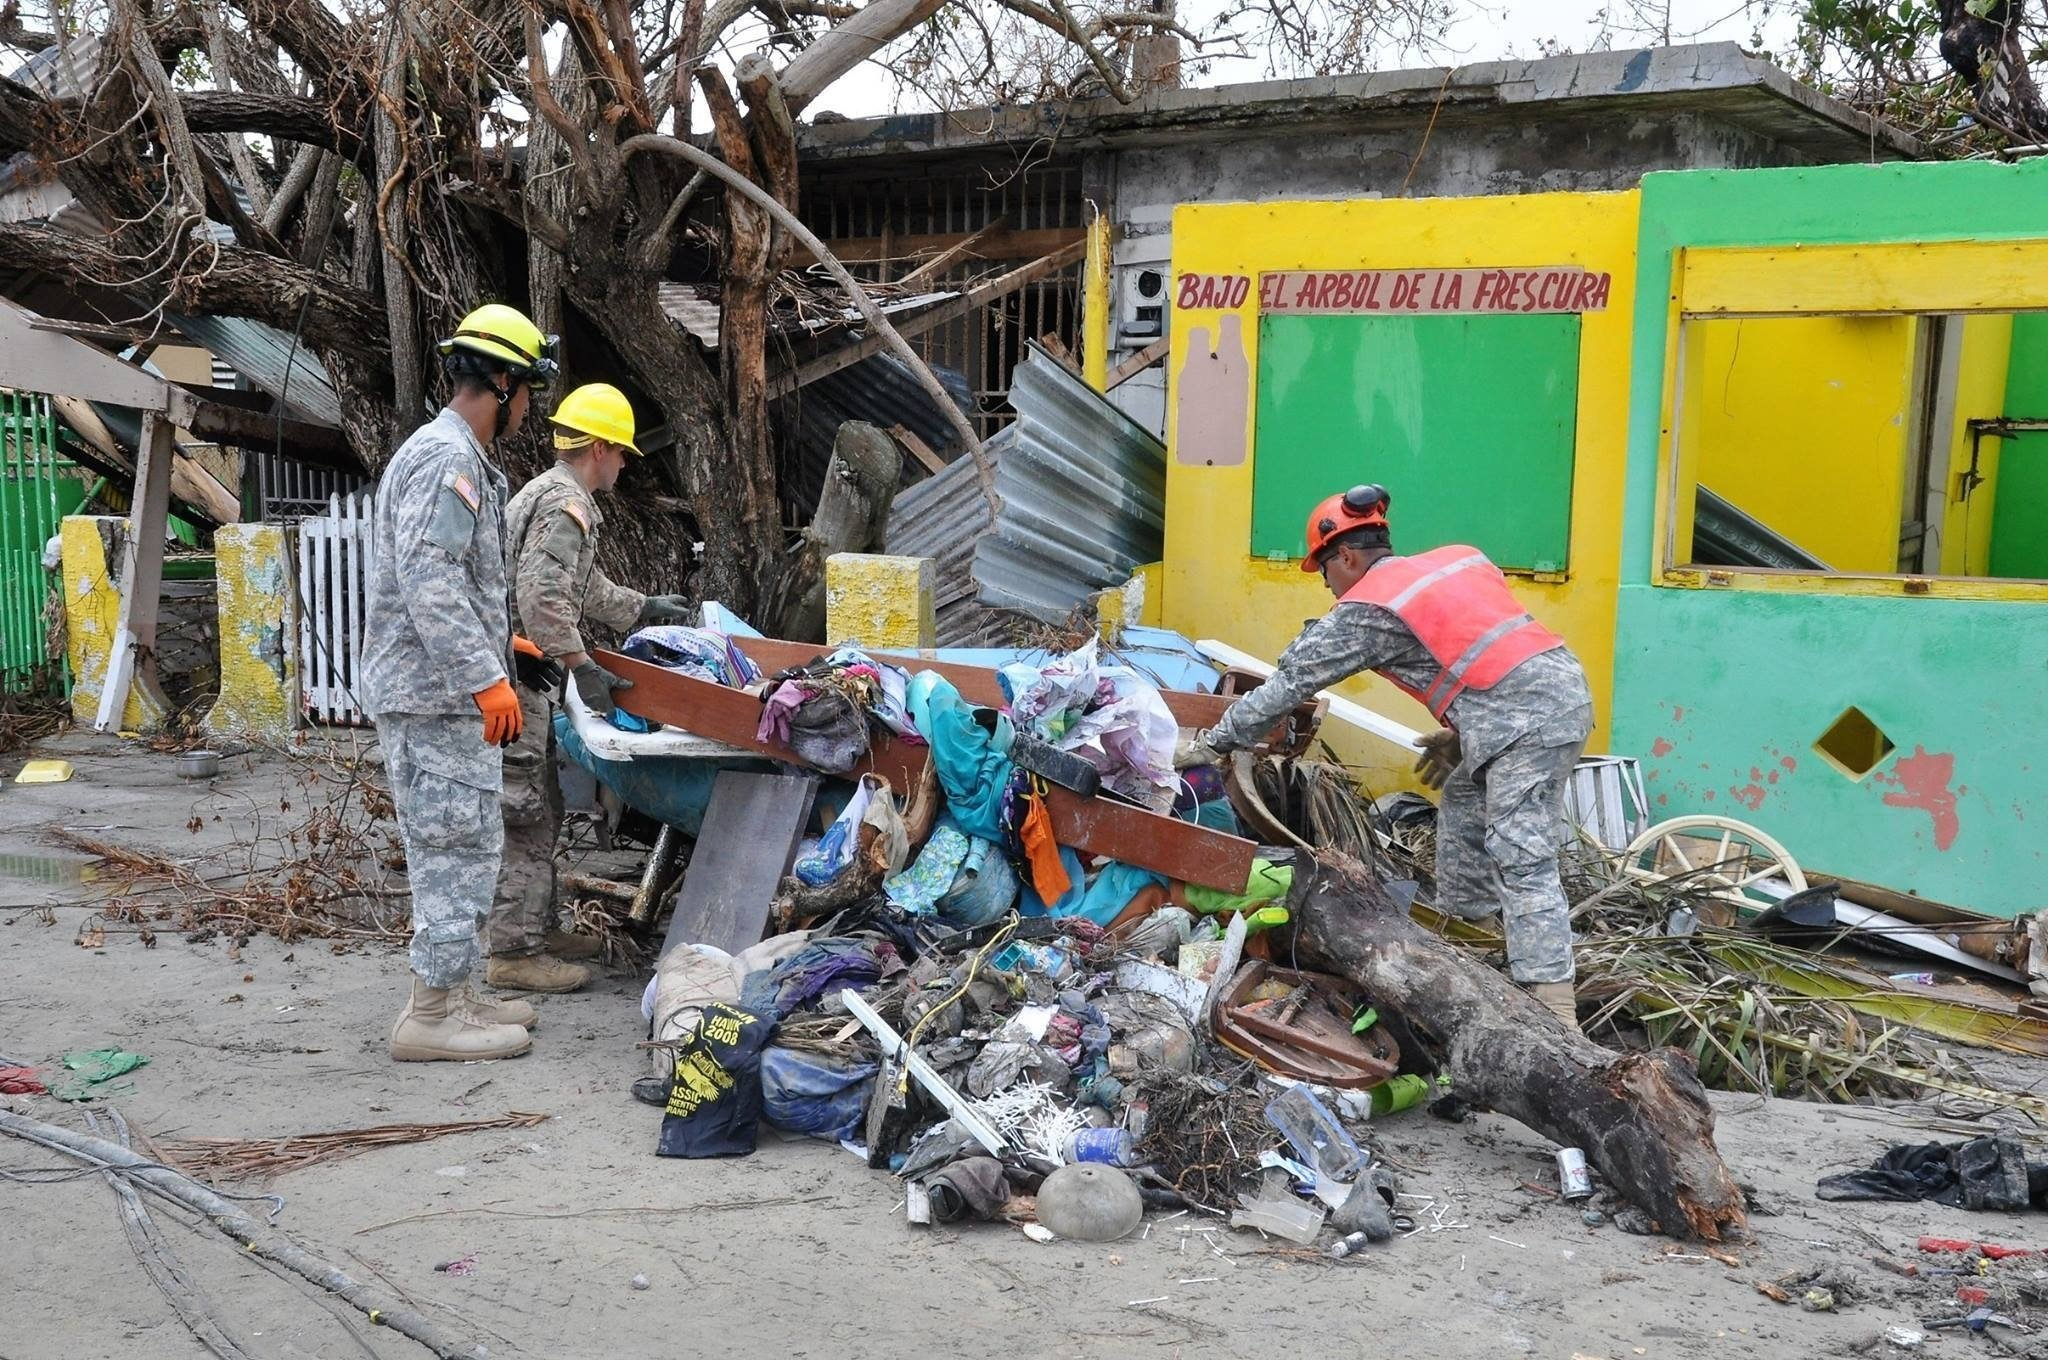 Maryland governor directs national guard to help Puerto Rico